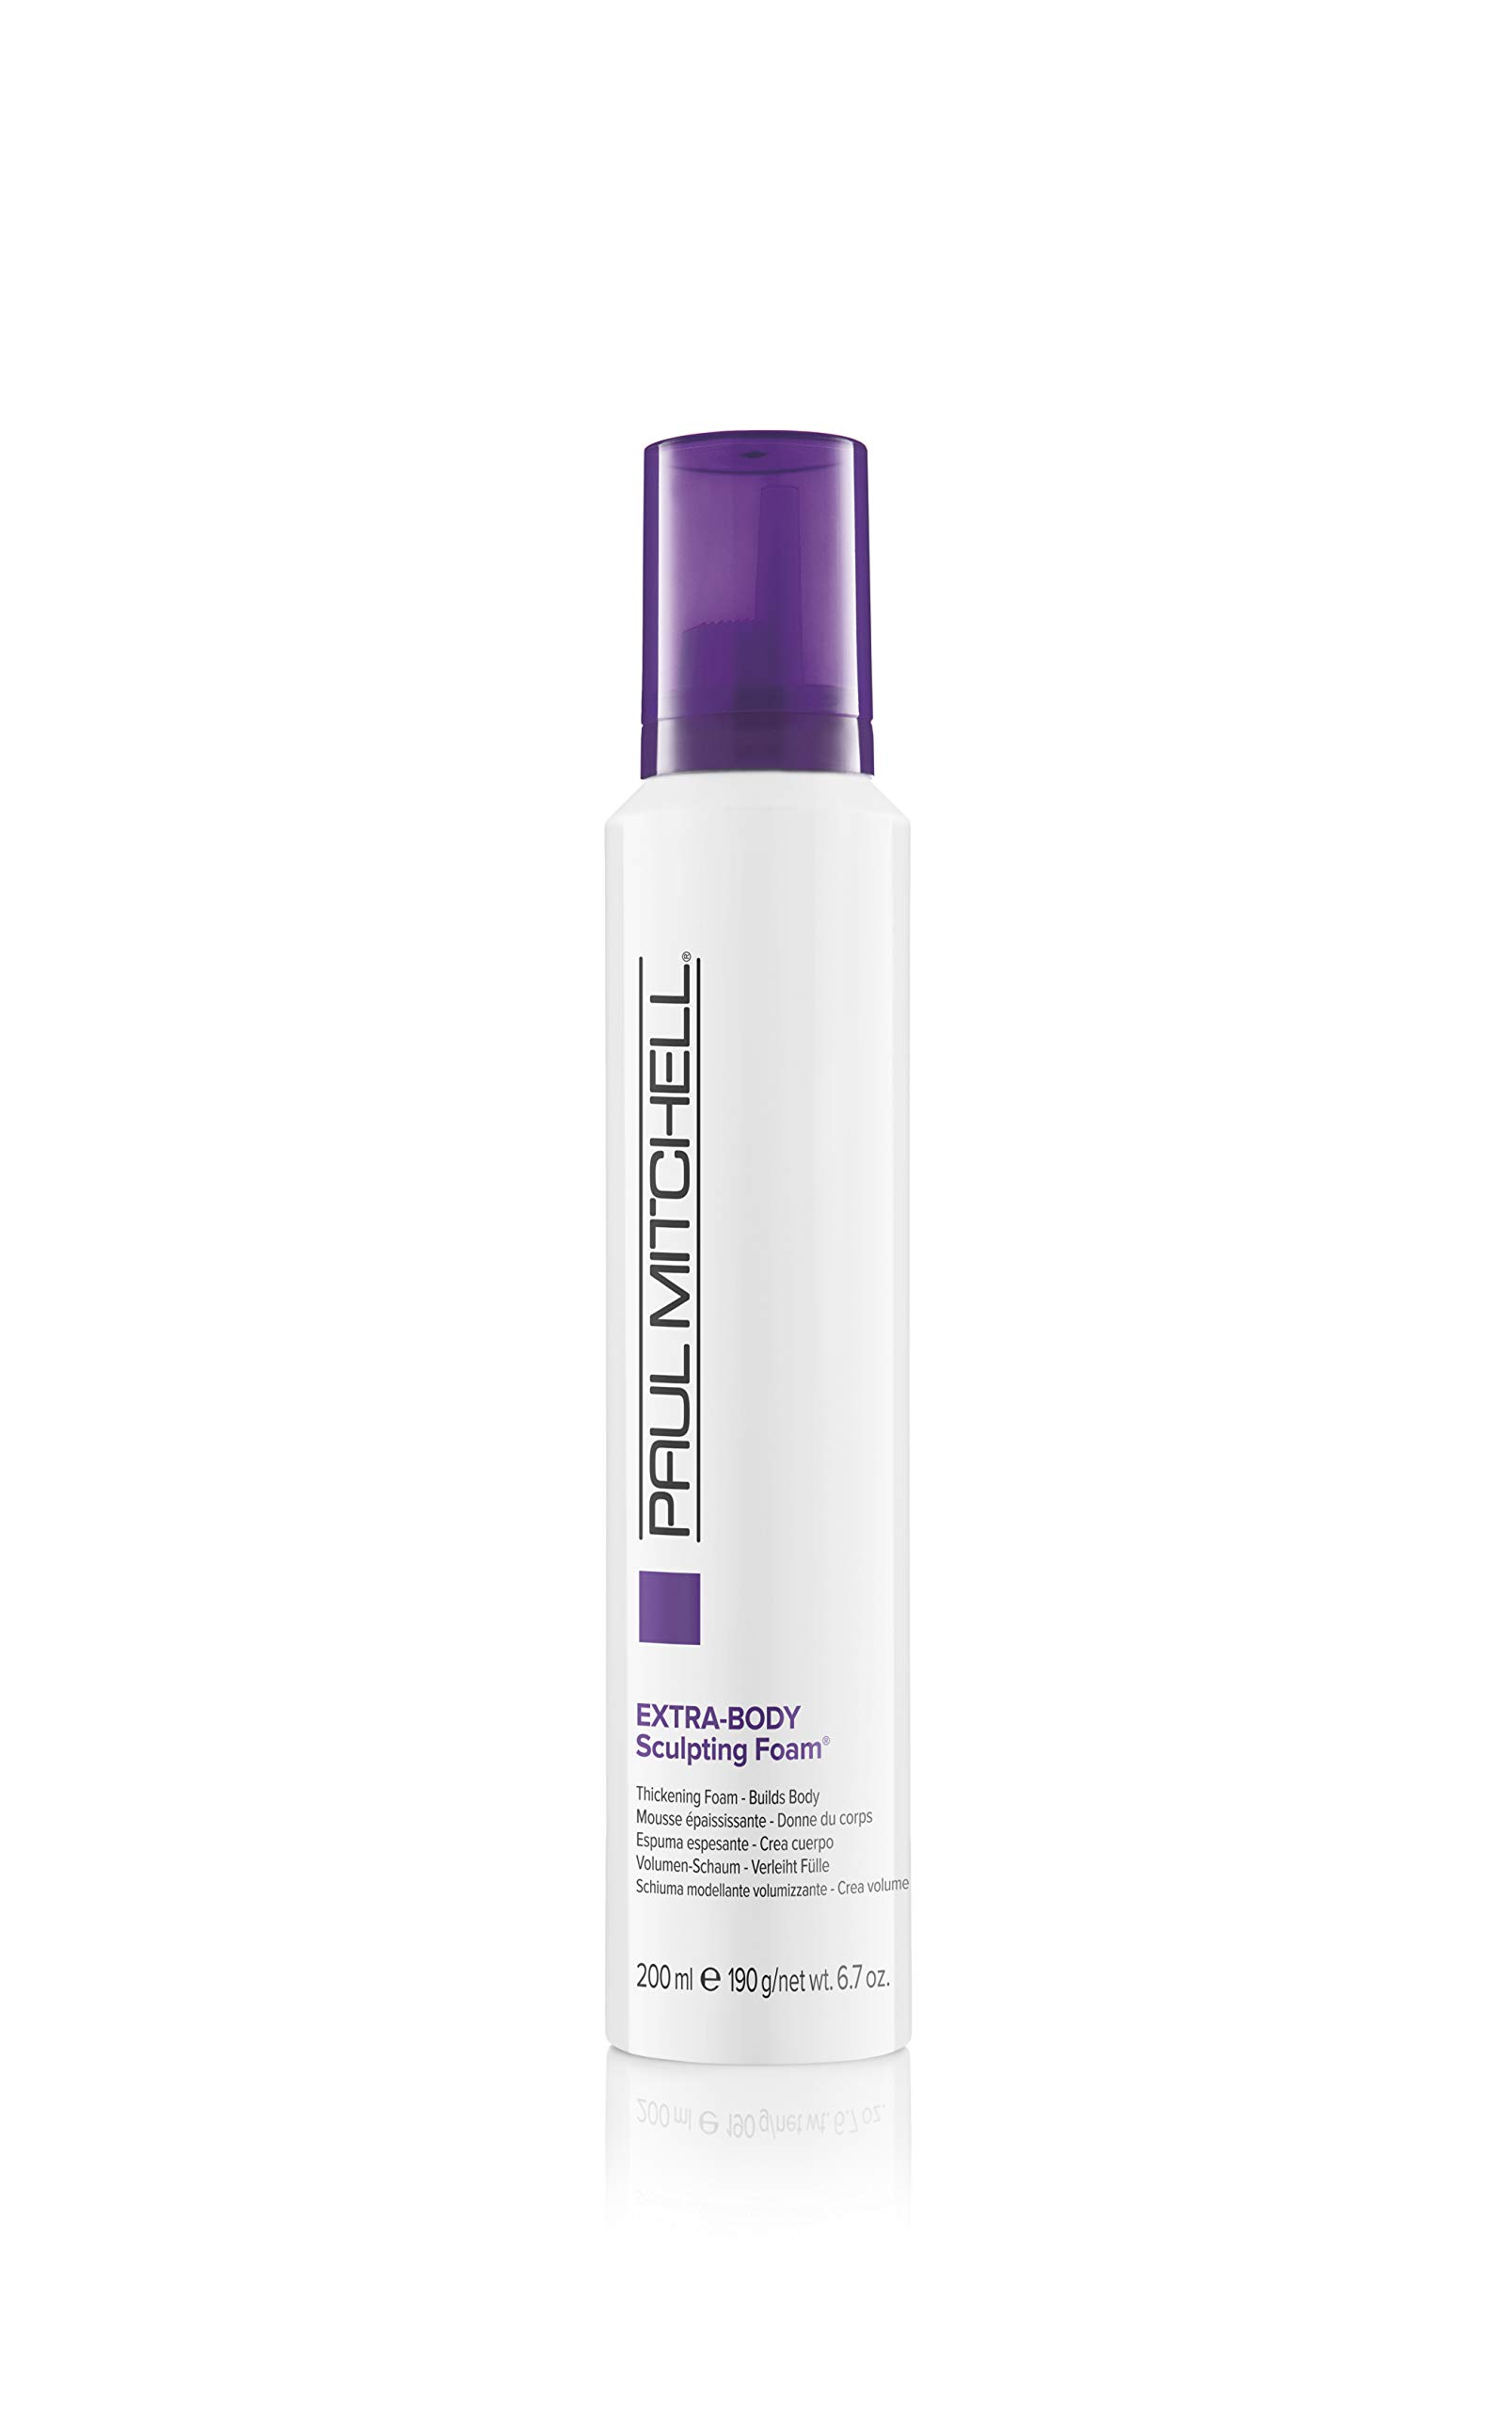 Paul Mitchell Extra-Body Sculpting Foam,6.7  oz